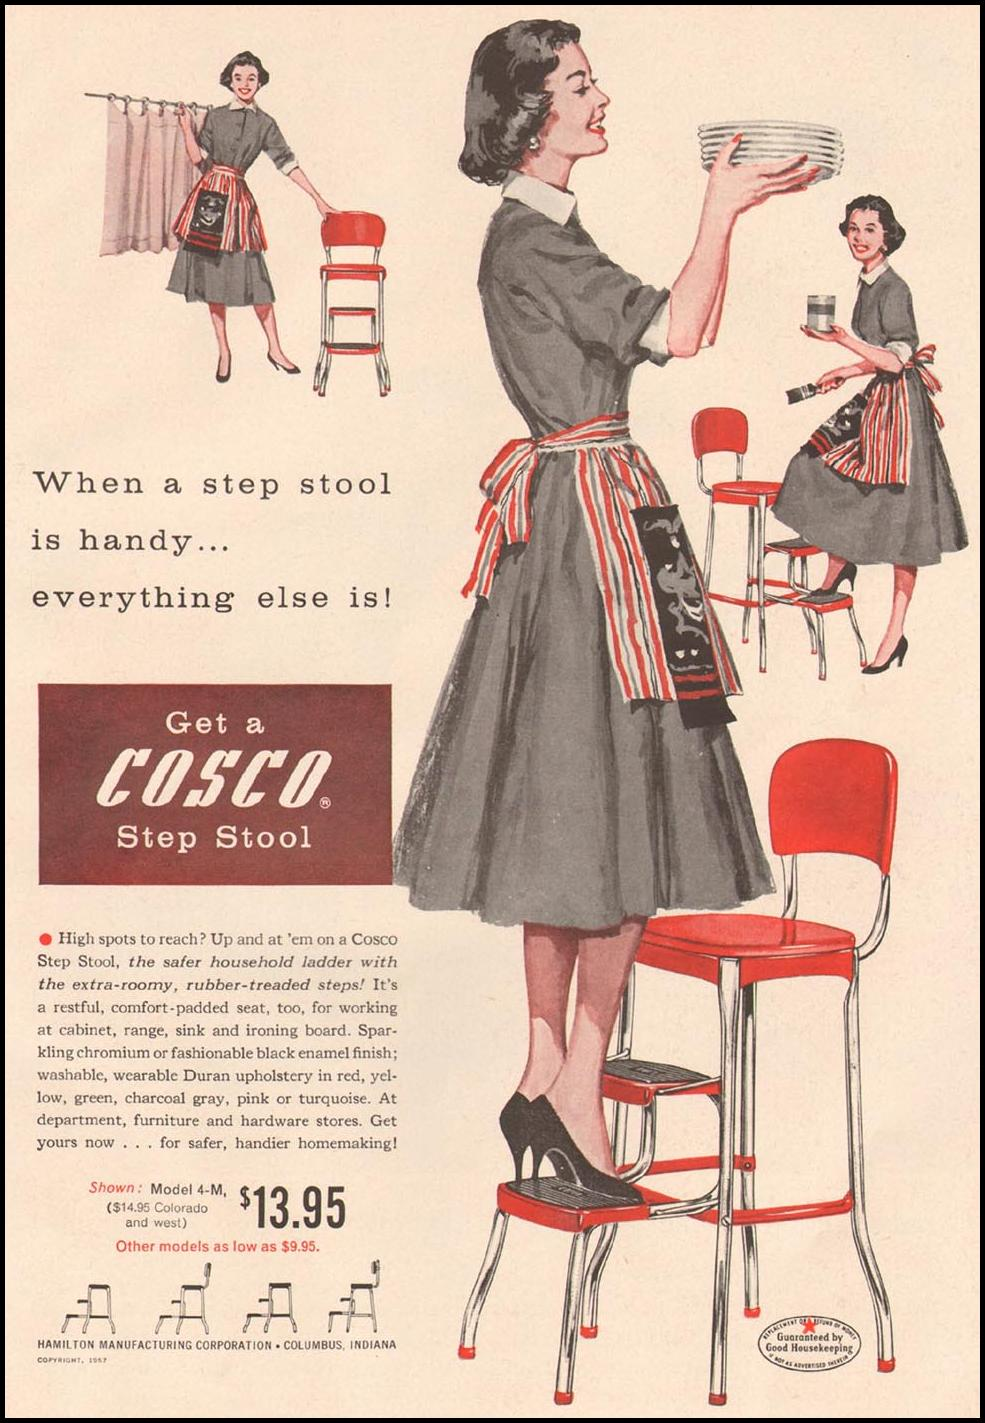 COSCO STOOLS GOOD HOUSEKEEPING 05/01/1957 p. 175